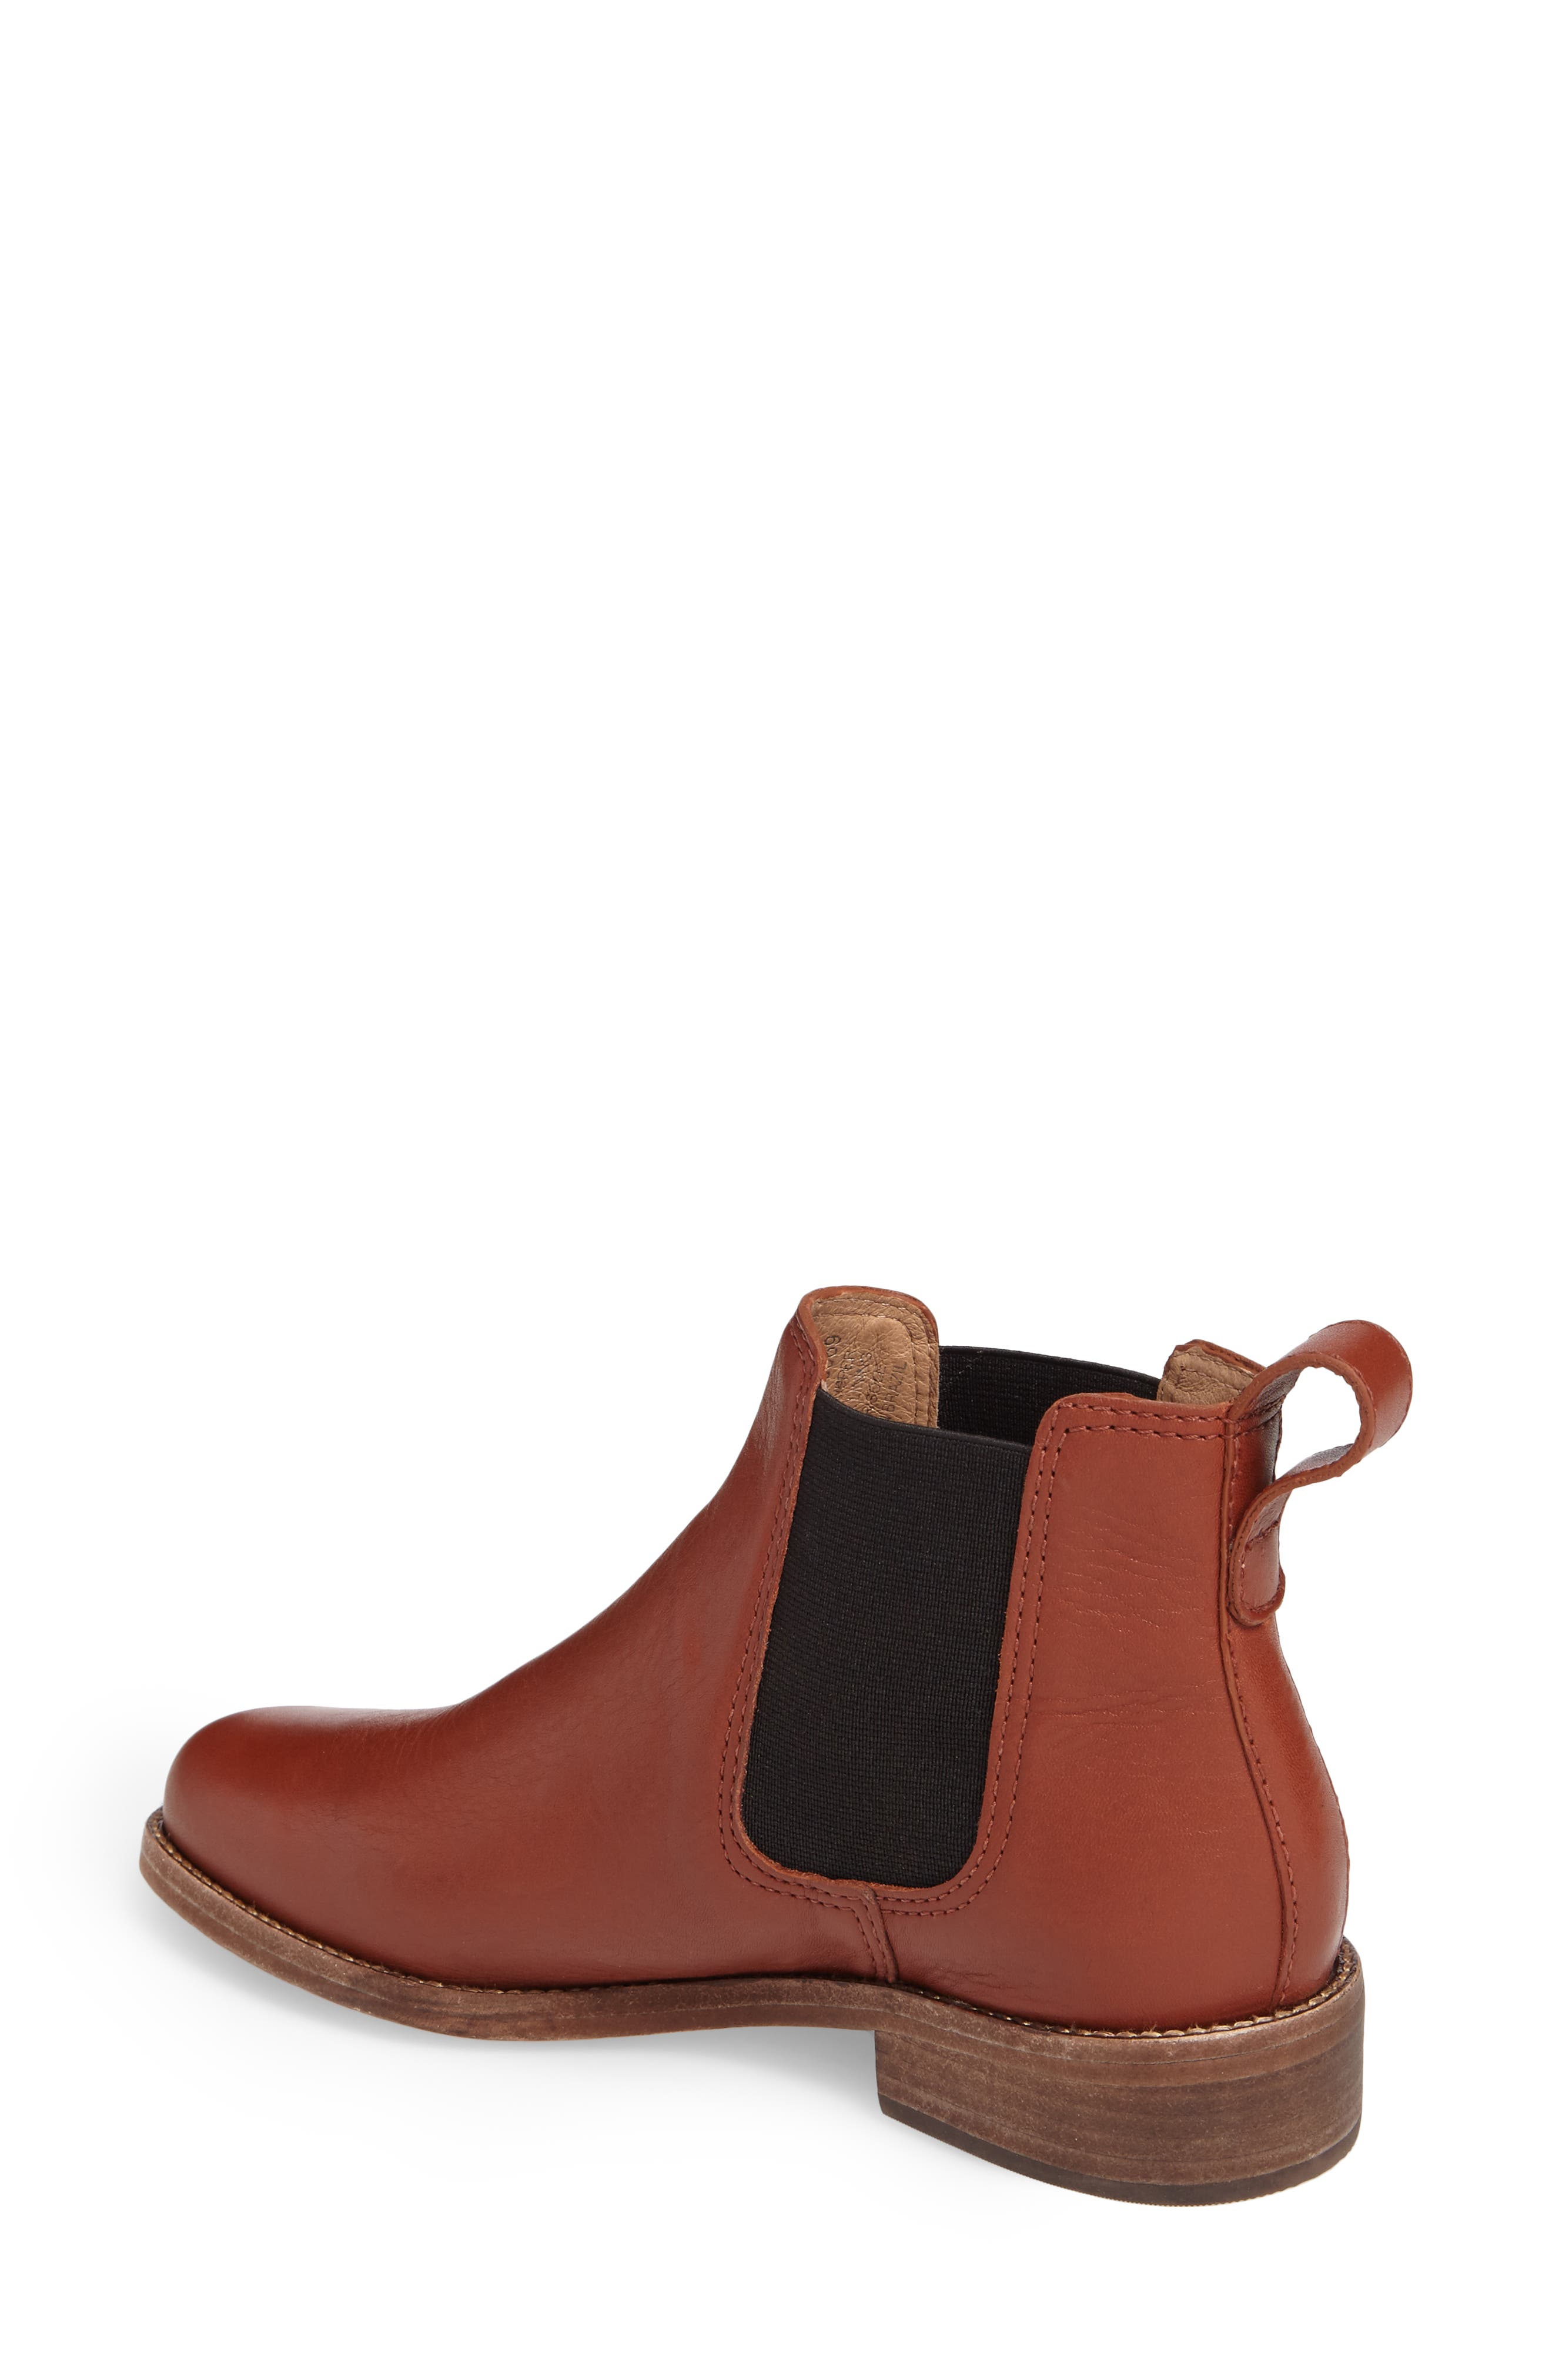 Ainsley Chelsea Boot,                             Alternate thumbnail 2, color,                             Vintage Redwood Leather